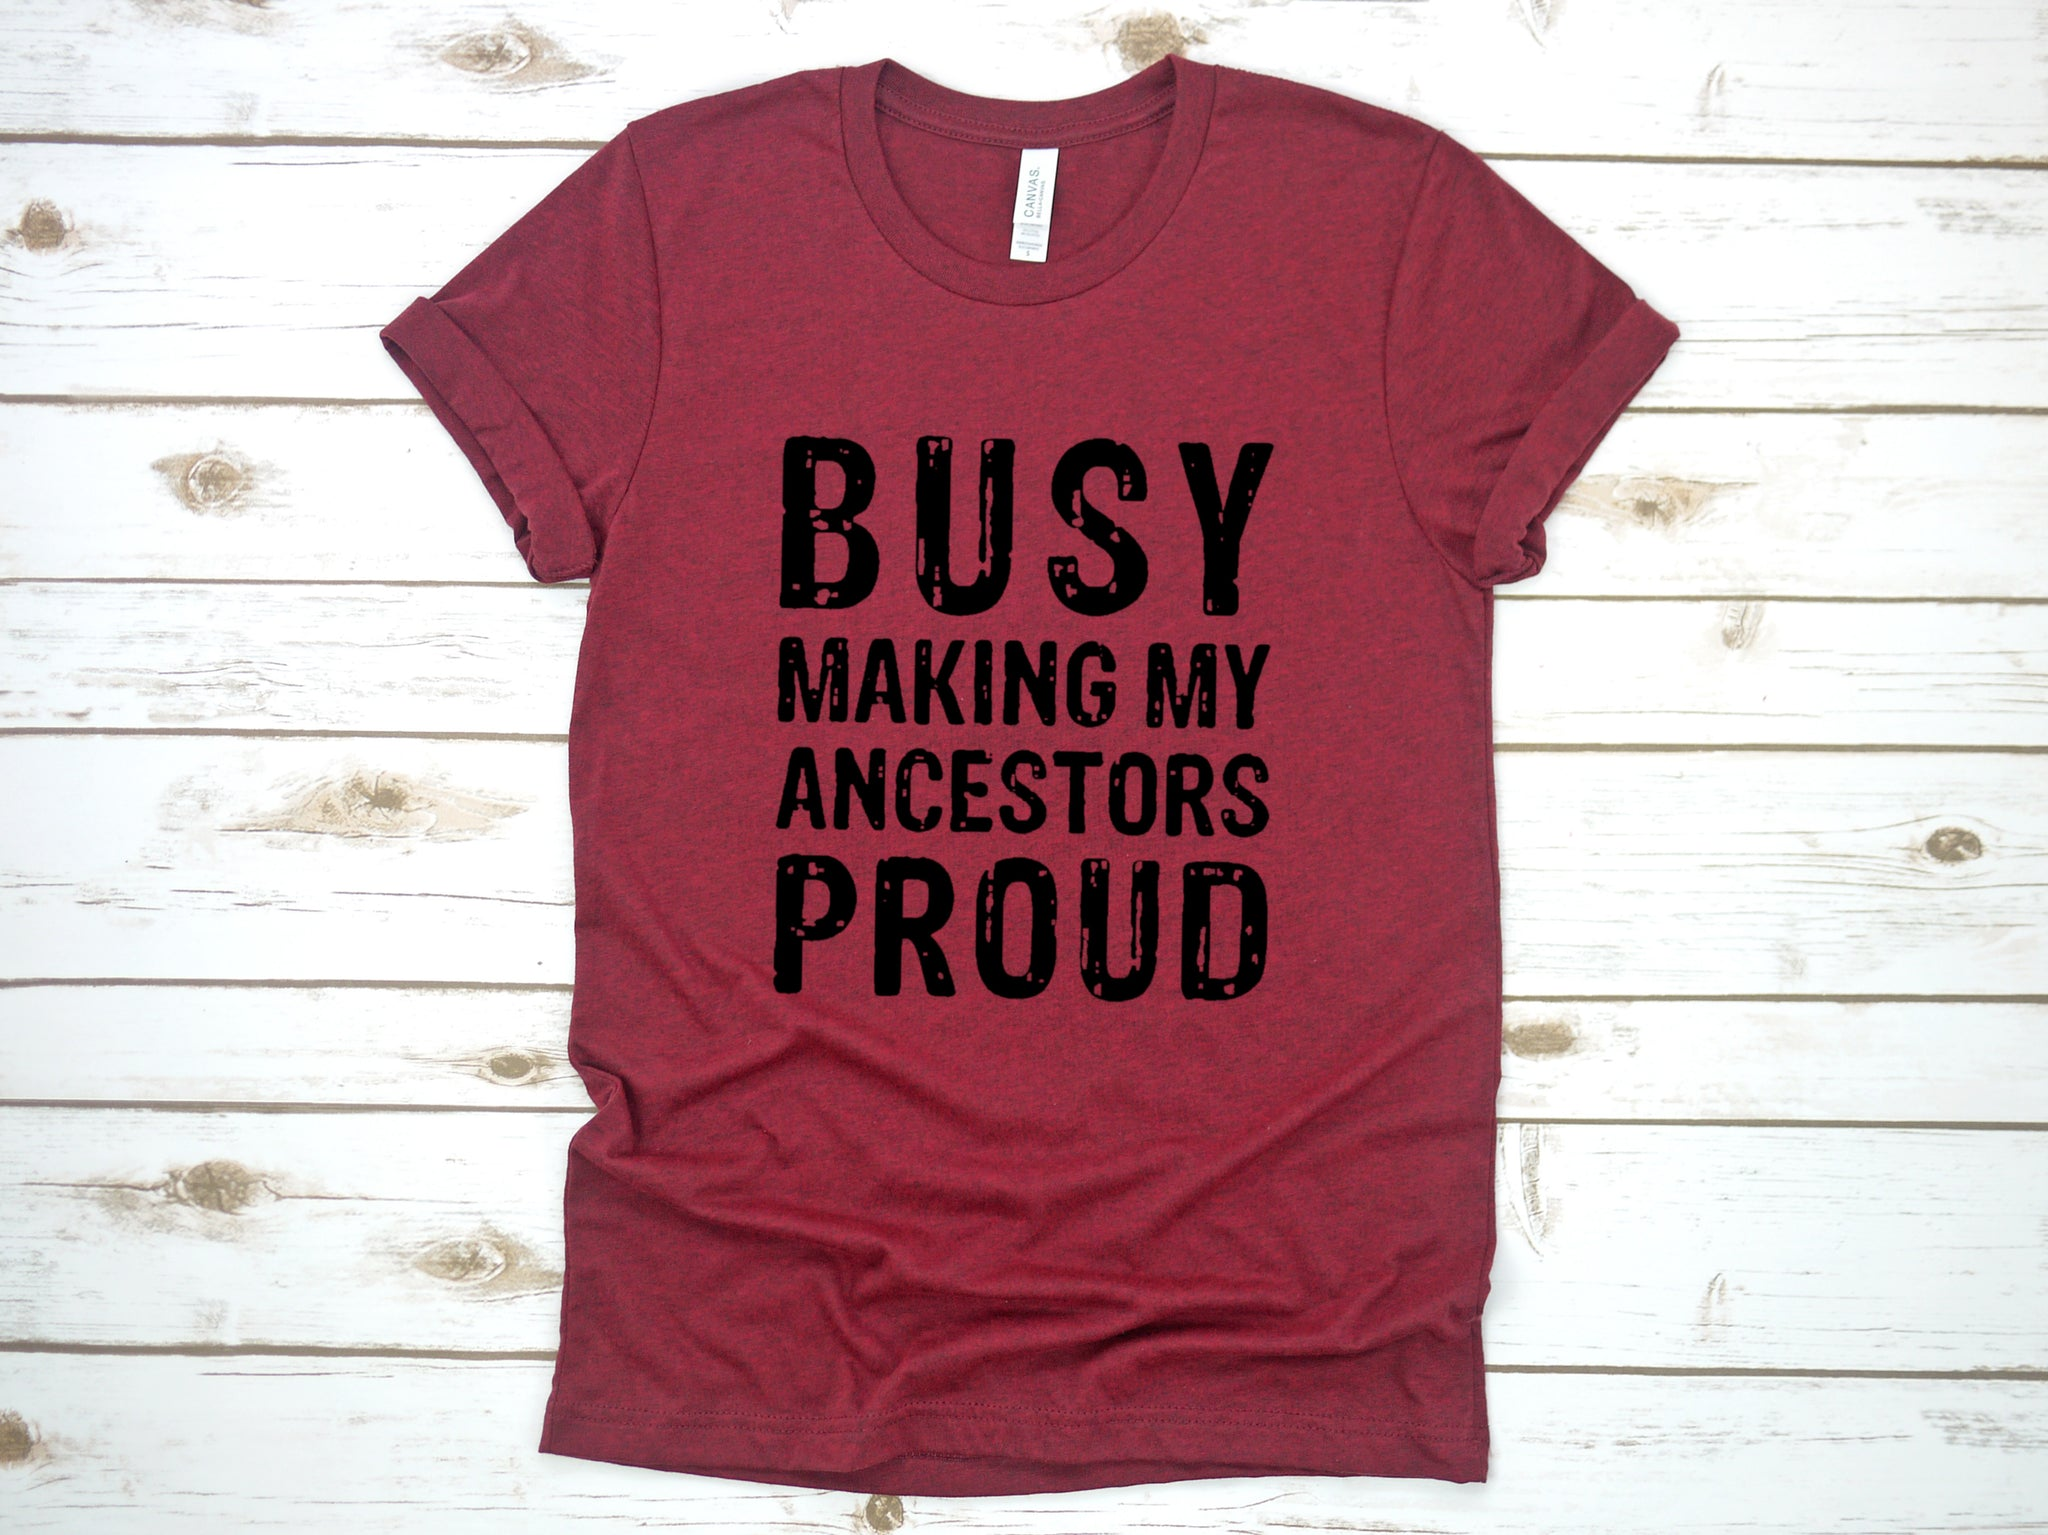 Busy Making My Ancestors Proud: Crew